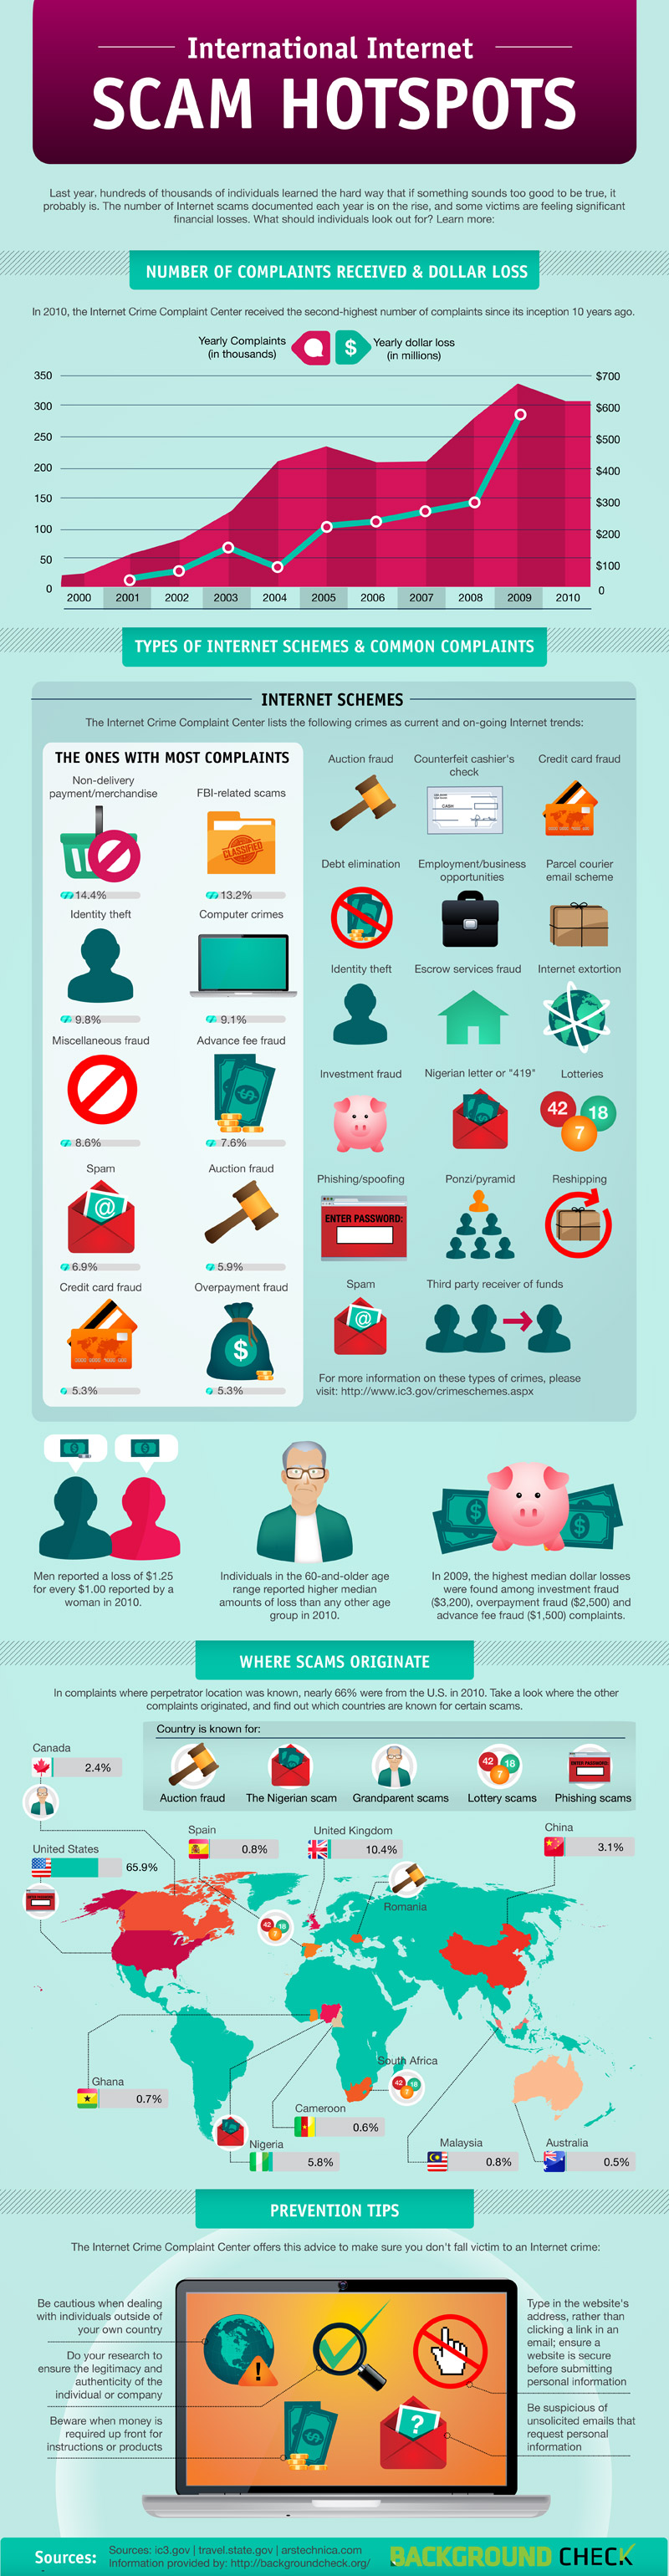 internet scams uitschieters infographic